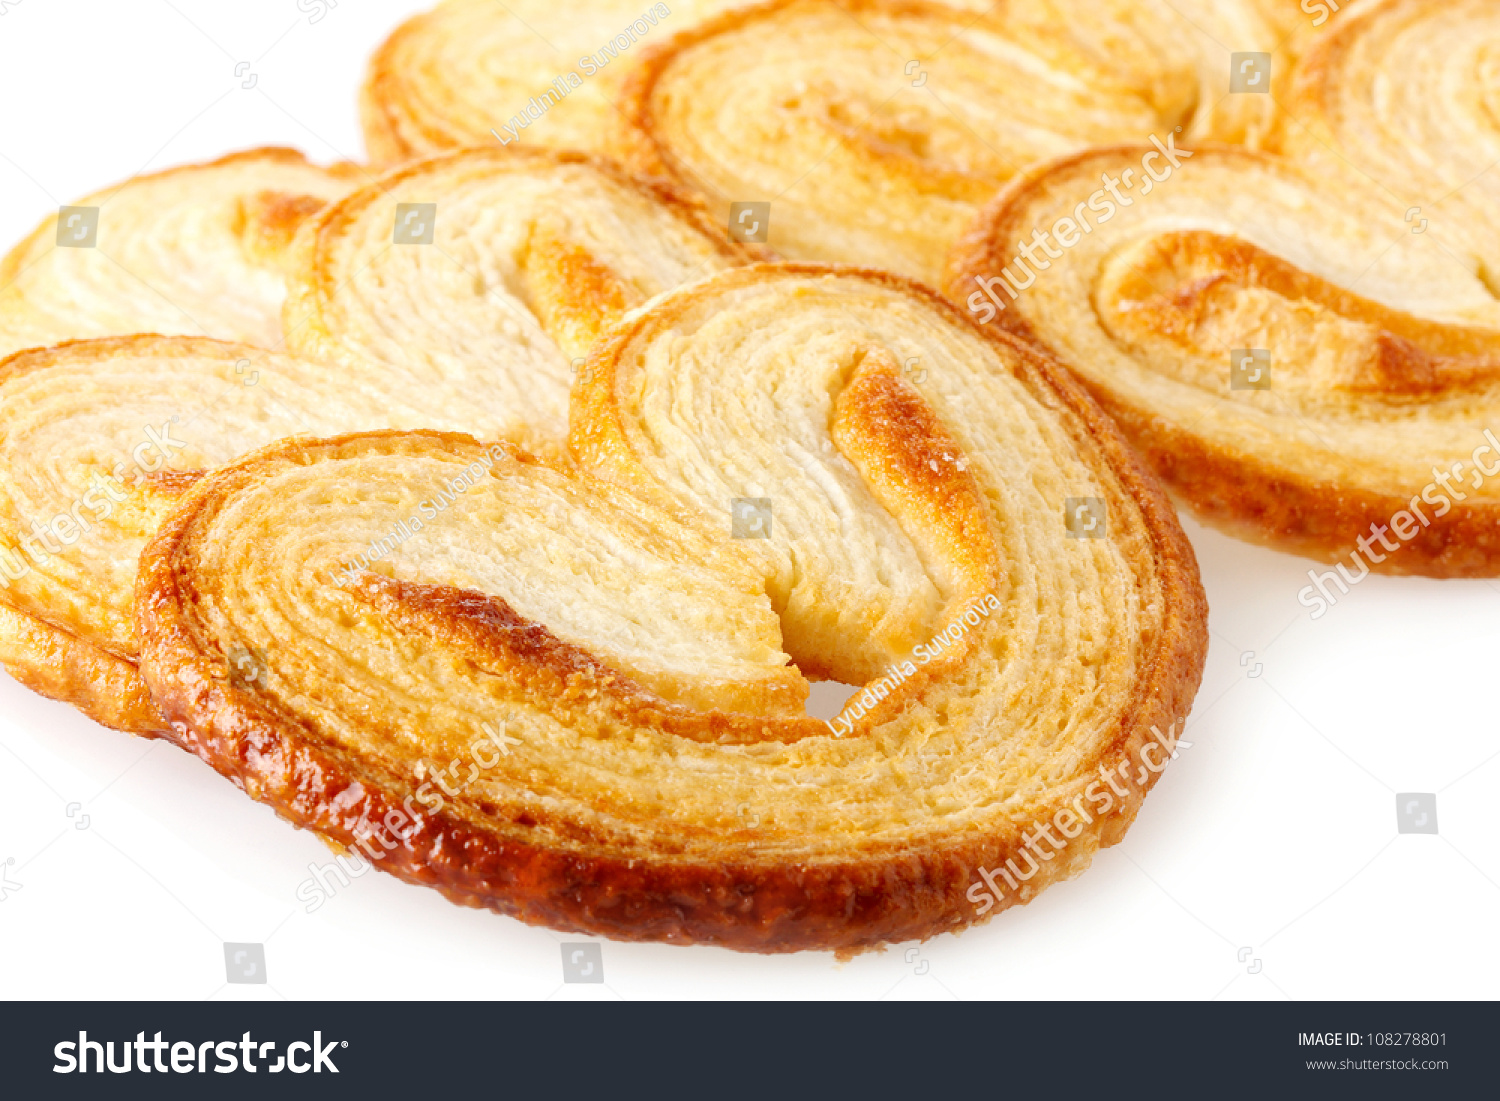 Palmiers (Elephant Ear), Puff Pastry Cookie Stock Photo 108278801 ...